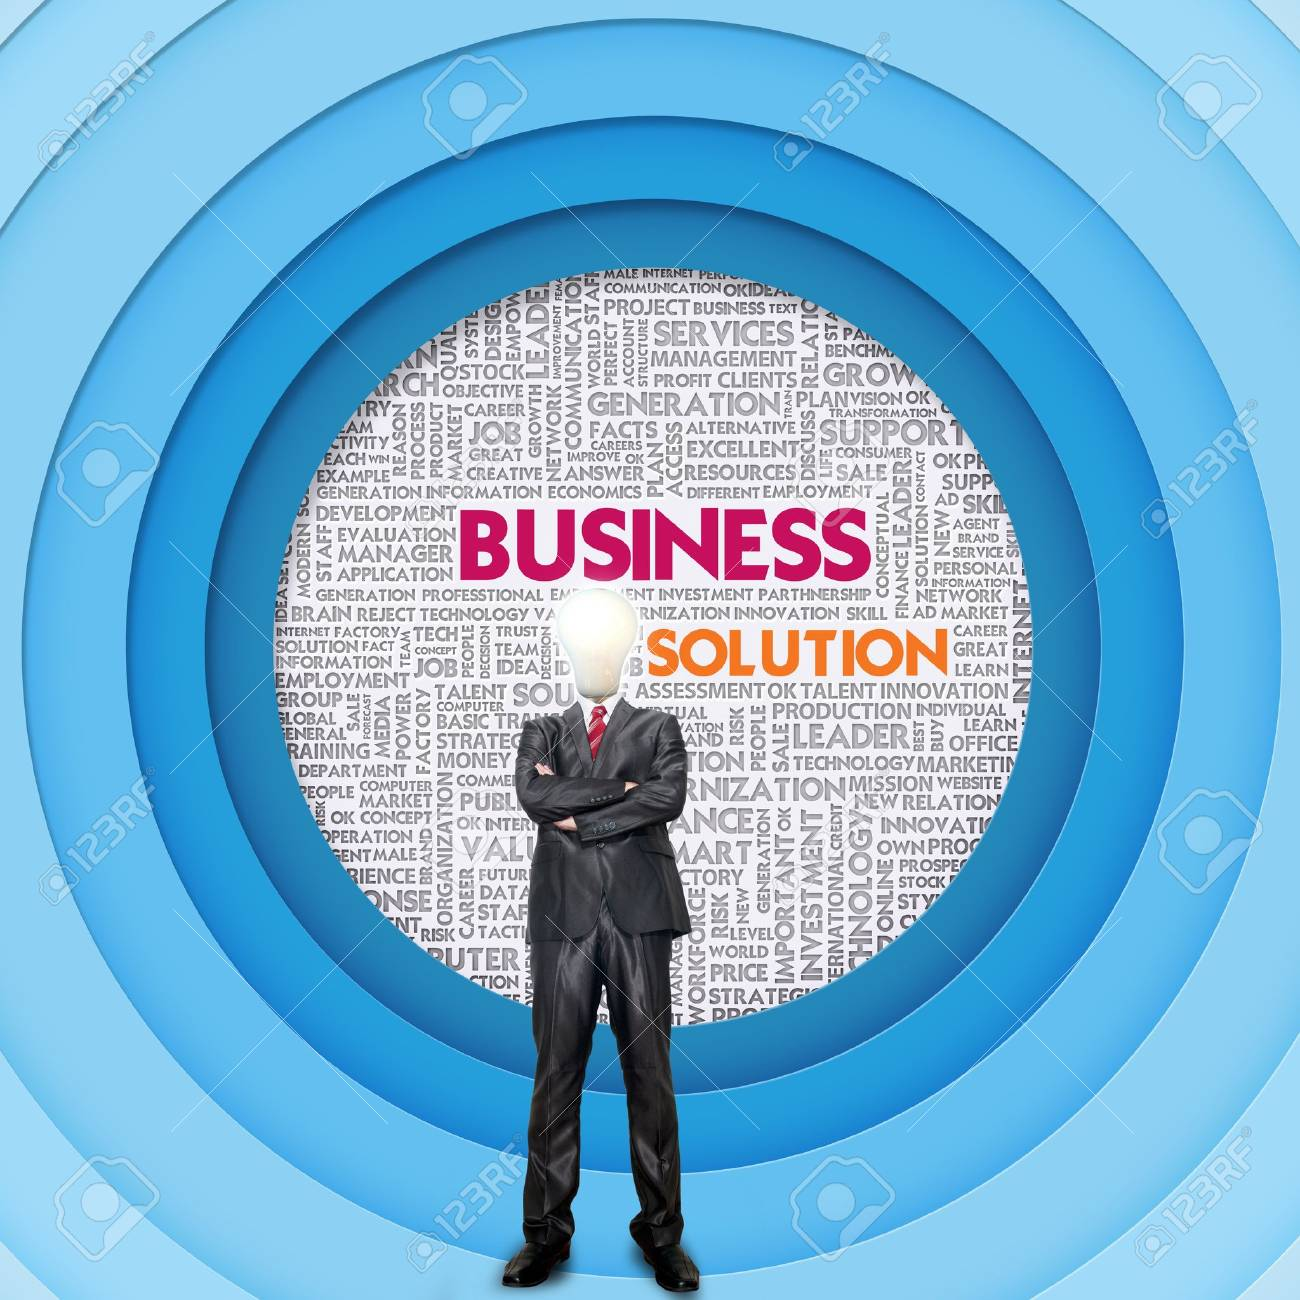 Business word cloud for business and finance concept, Business Innovation Stock Photo - 14645783